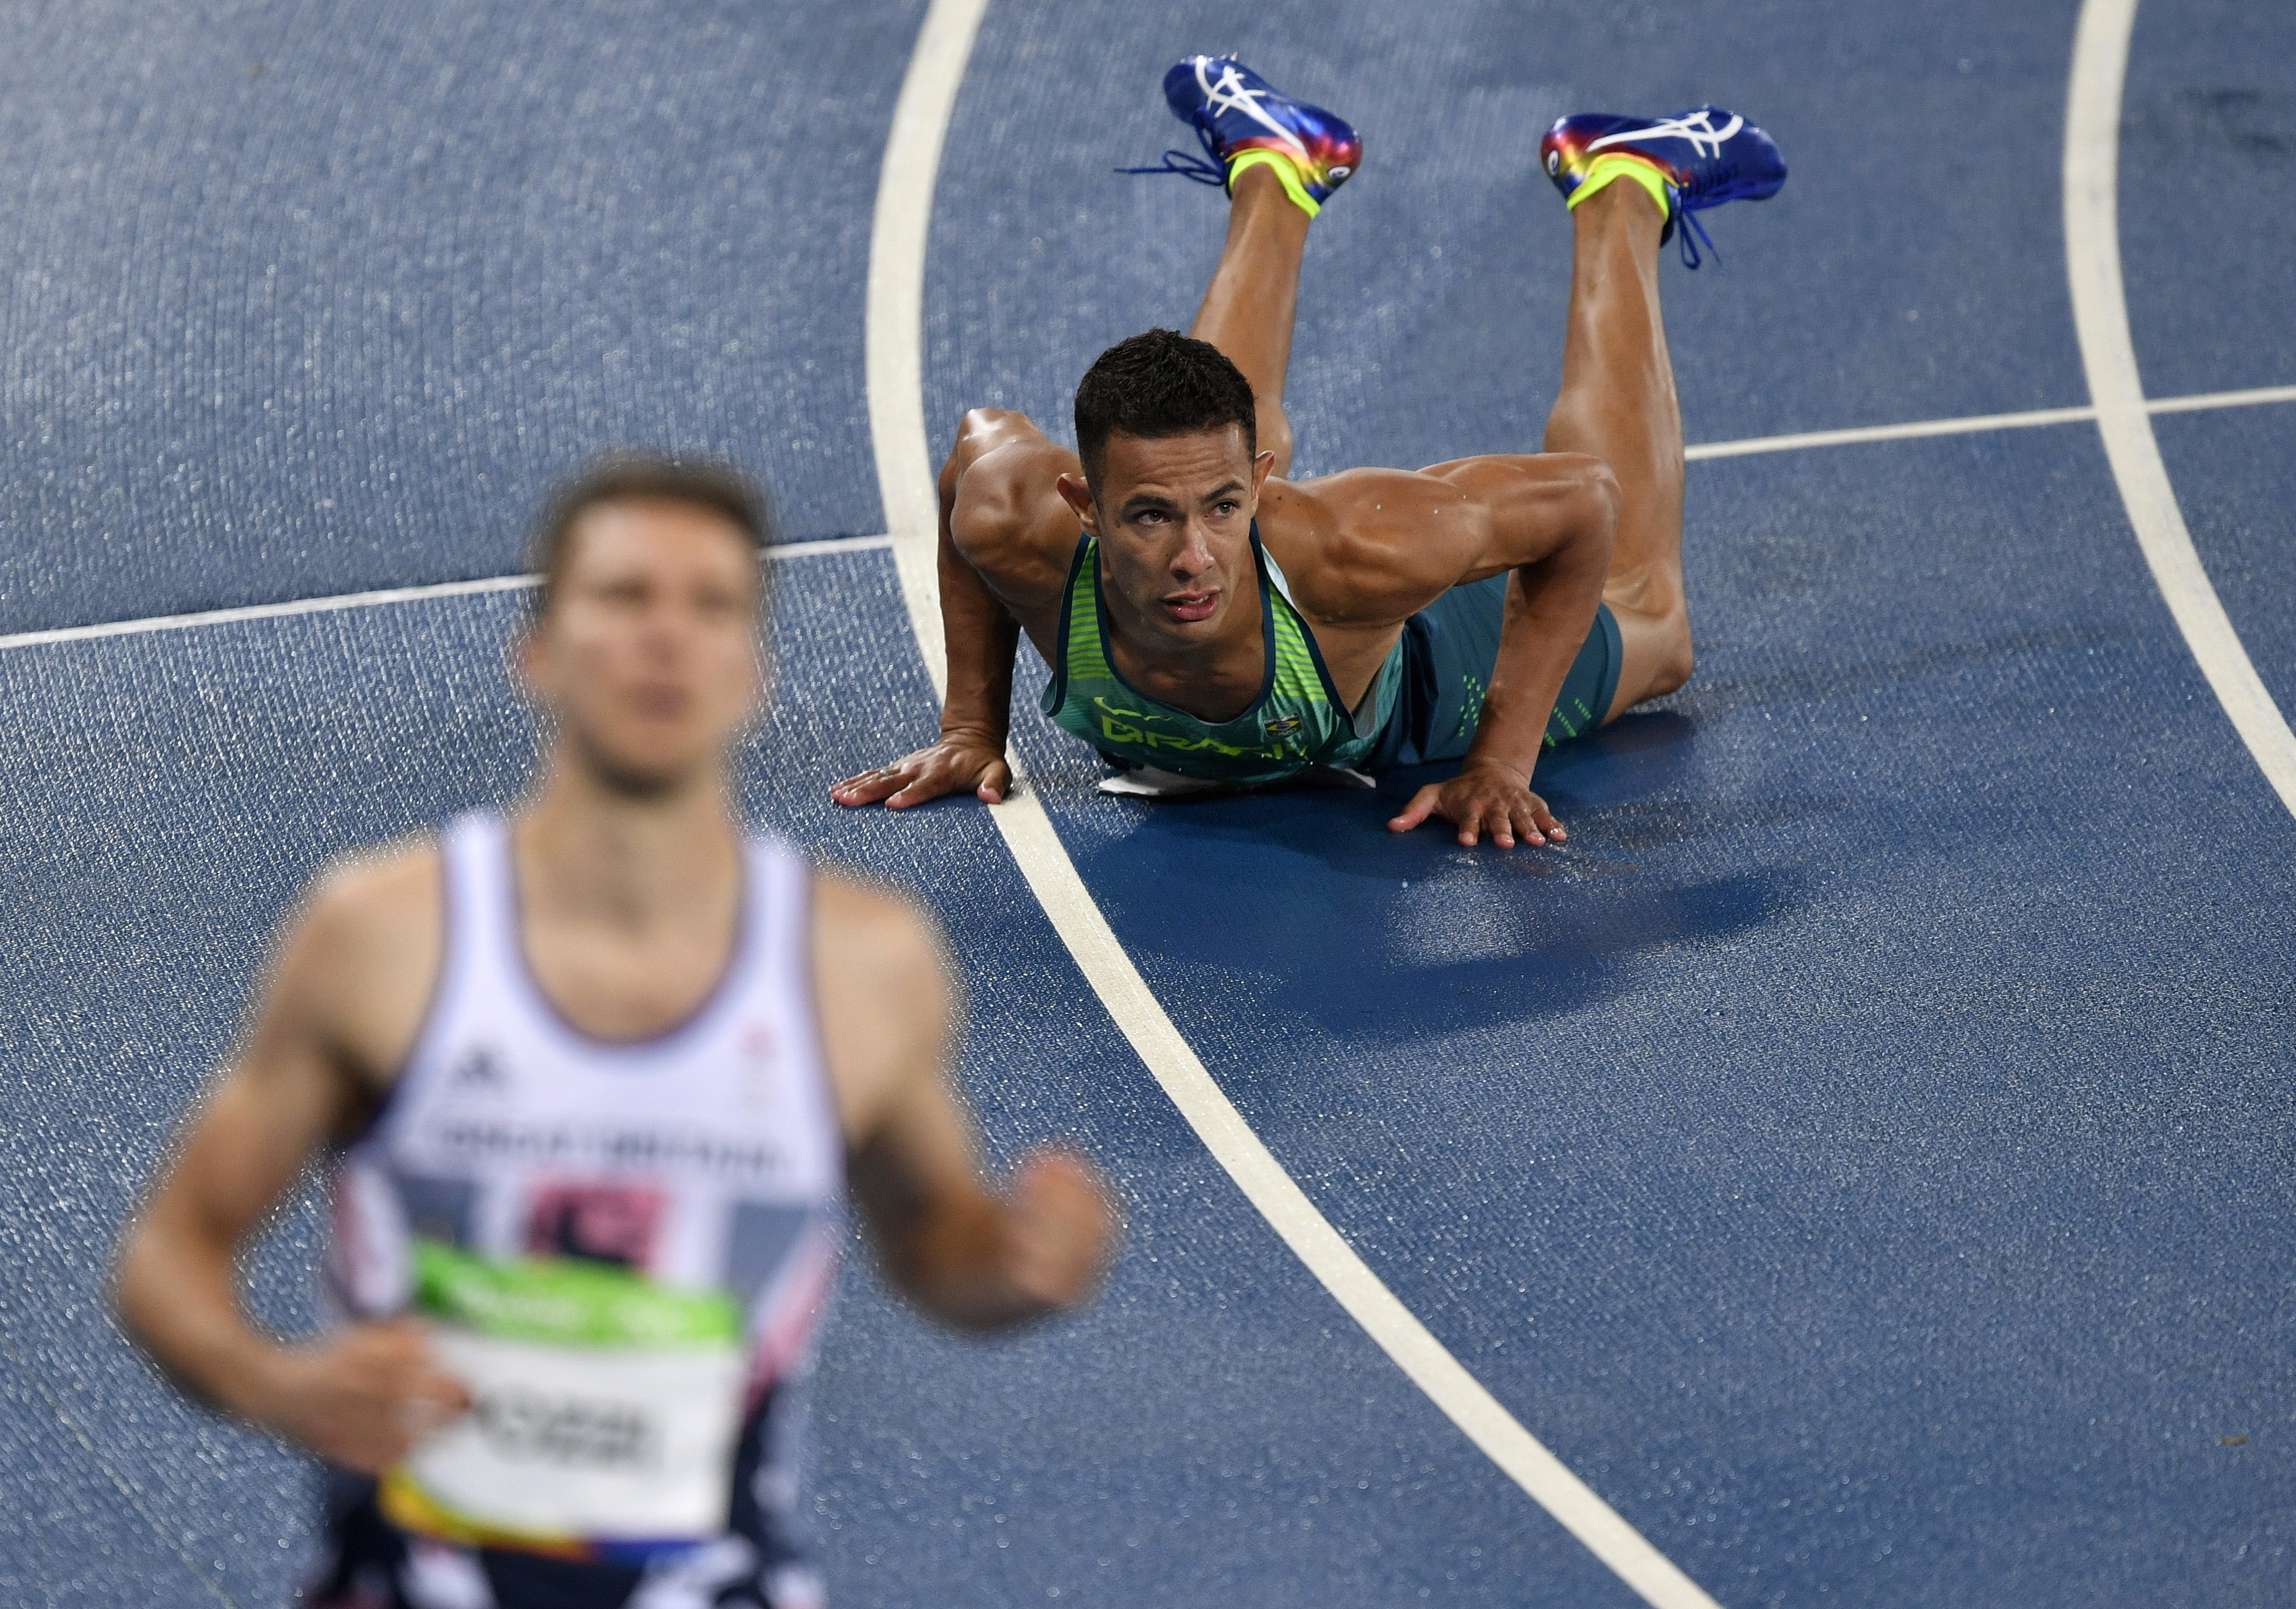 Britain's Andrew Pozzi and Brazil's Joao Vitor De Oliveira, right, compete in a men's 110-meter hurdles heat during the athletics competitions of the 2016 Summer Olympics at the Olympic stadium in Rio de Janeiro, Brazil, Monday, Aug. 15, 2016. (AP Photo/Martin Meissner)